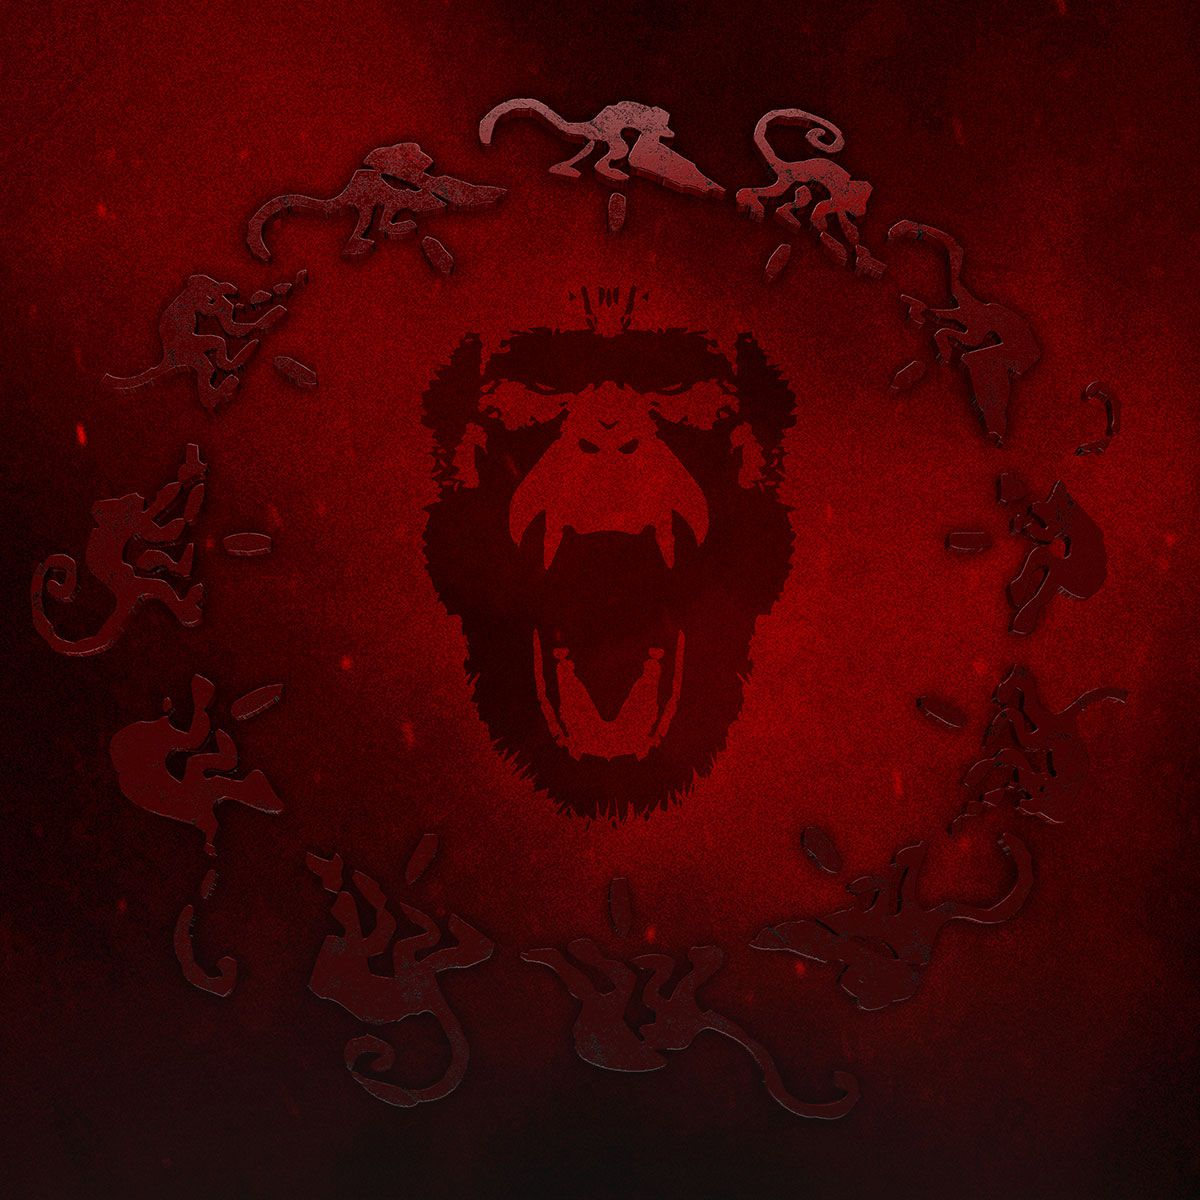 12 Monkeys - By 2043, a virus has wiped out most of the world's population. One time traveler, Cole, must journey to 2015 to stop the virus from ever happening.